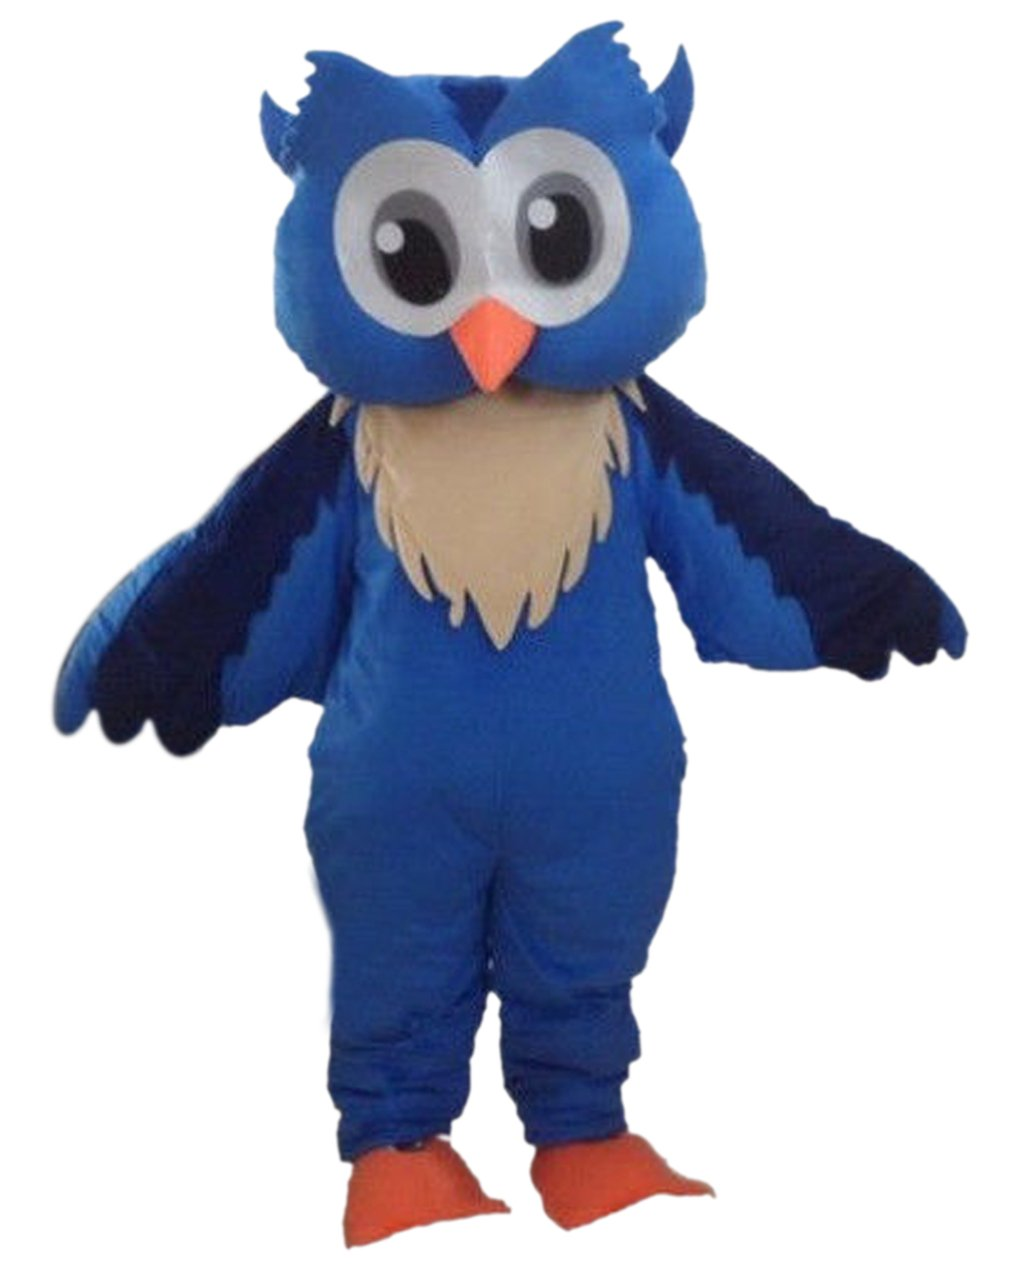 Blue Owl Mascot Costume Character Adult Sz Langteng Cartoon